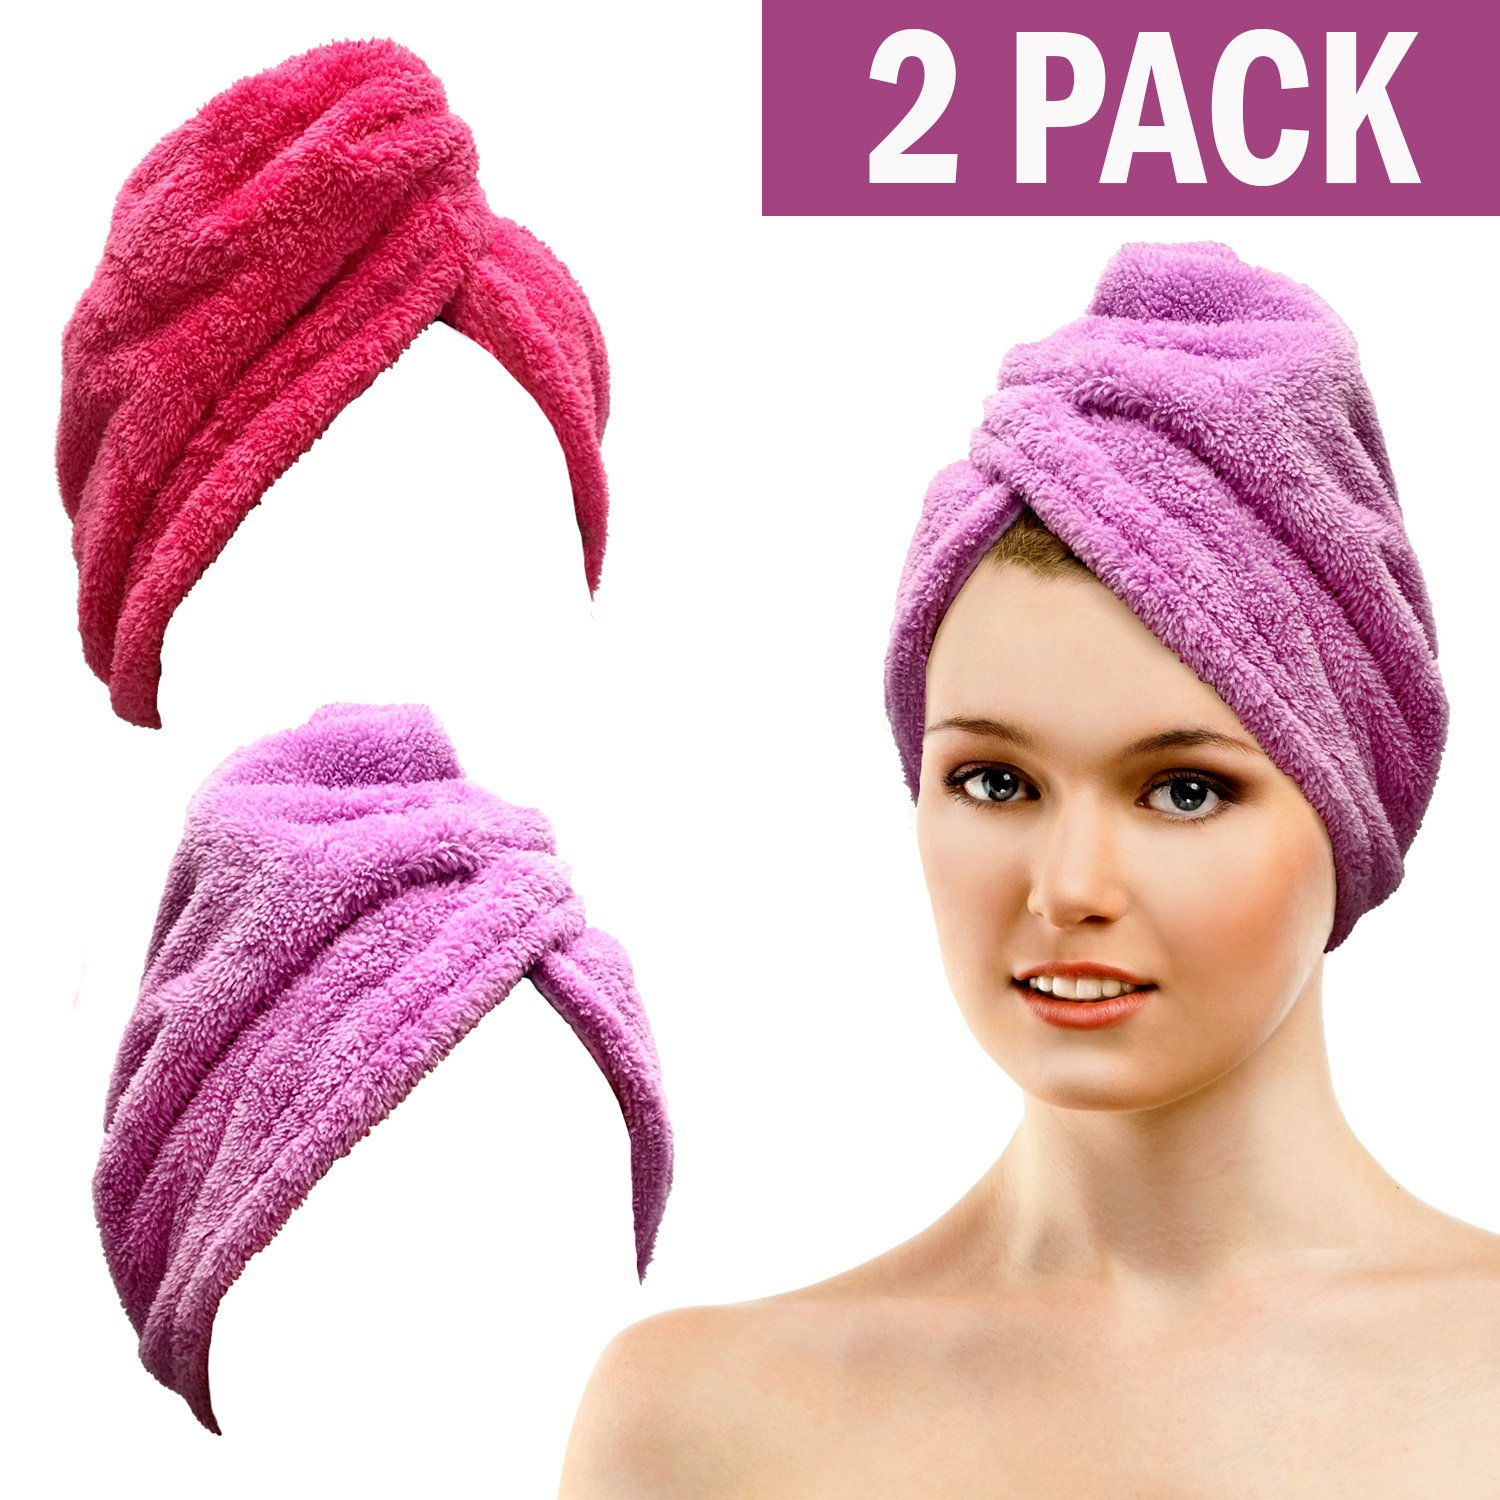 Bath Blossom Microfiber Hair Towel Wrap - Fast Drying Head Wraps Turban Shower Cap Style (2 Pack) For Women and Children Blossom Innovations HT-01